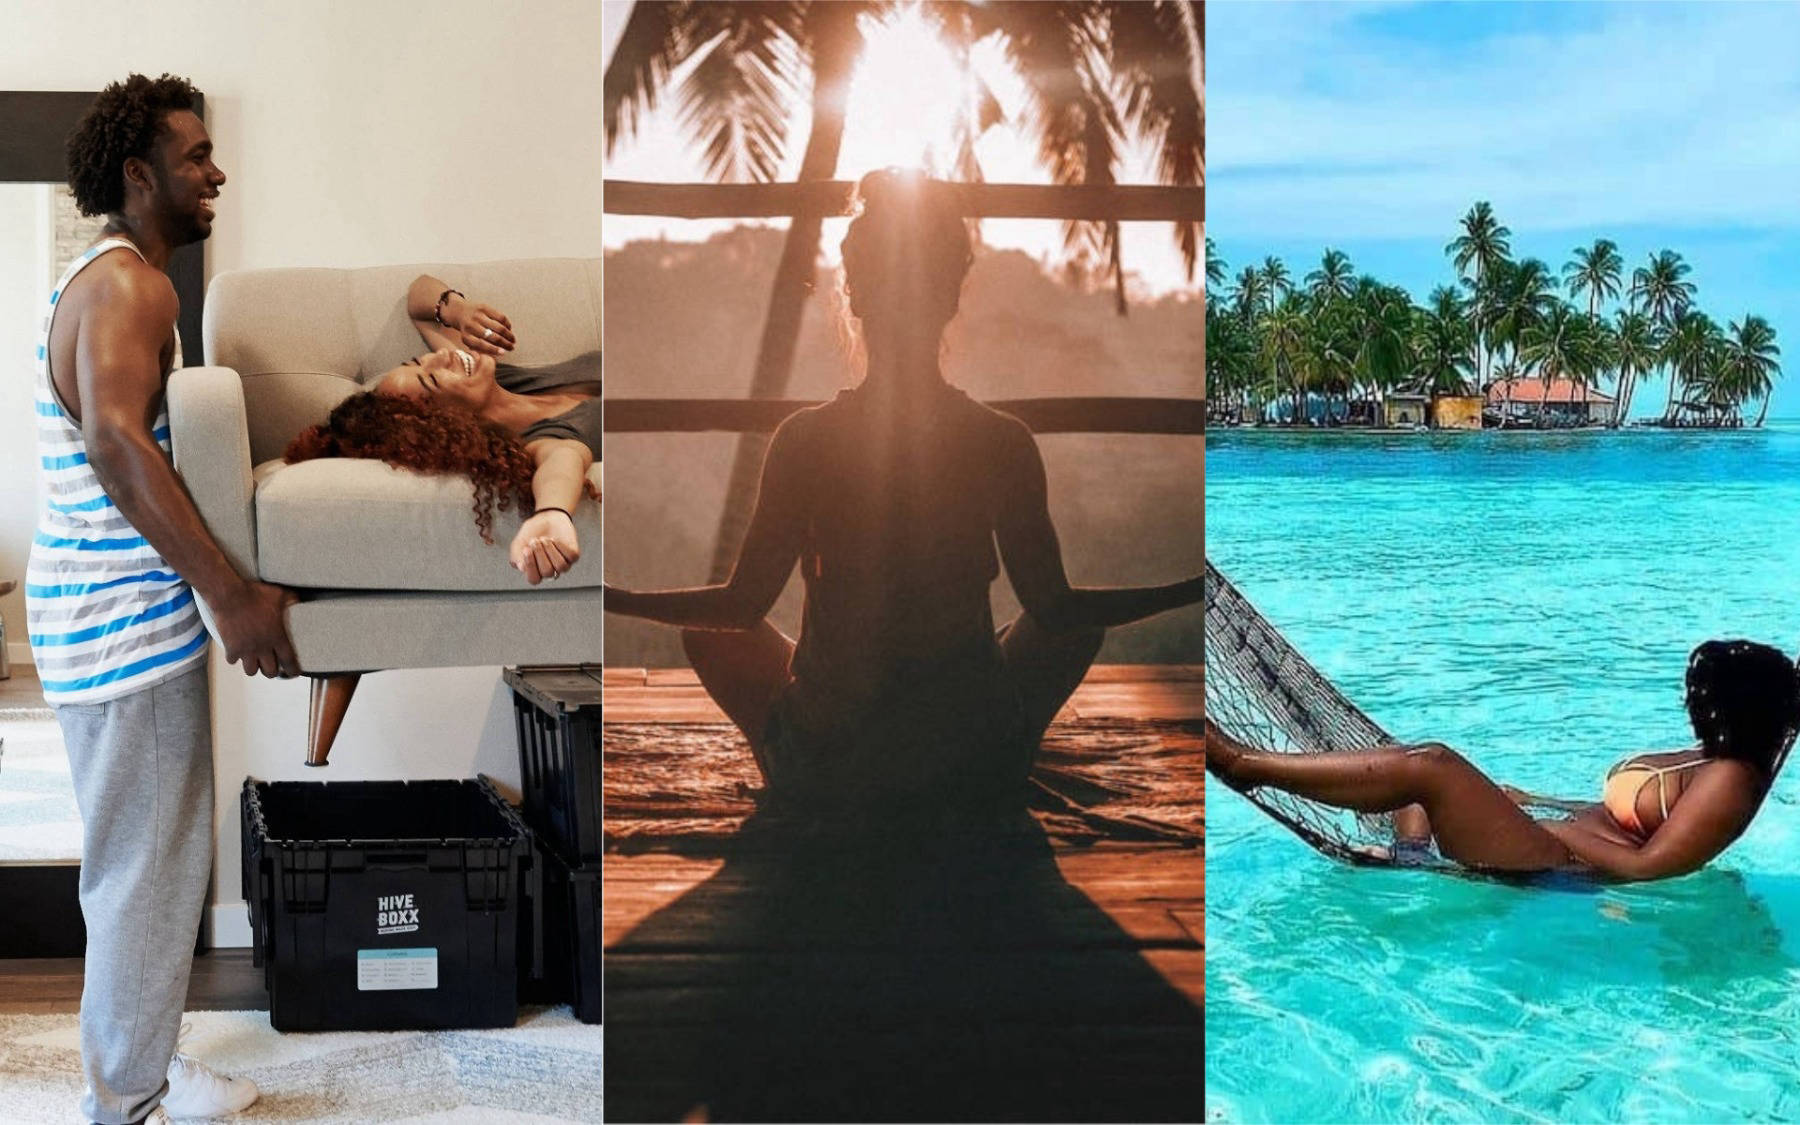 Collage of images including home makeover, woman meditating, and a woman on a hammock